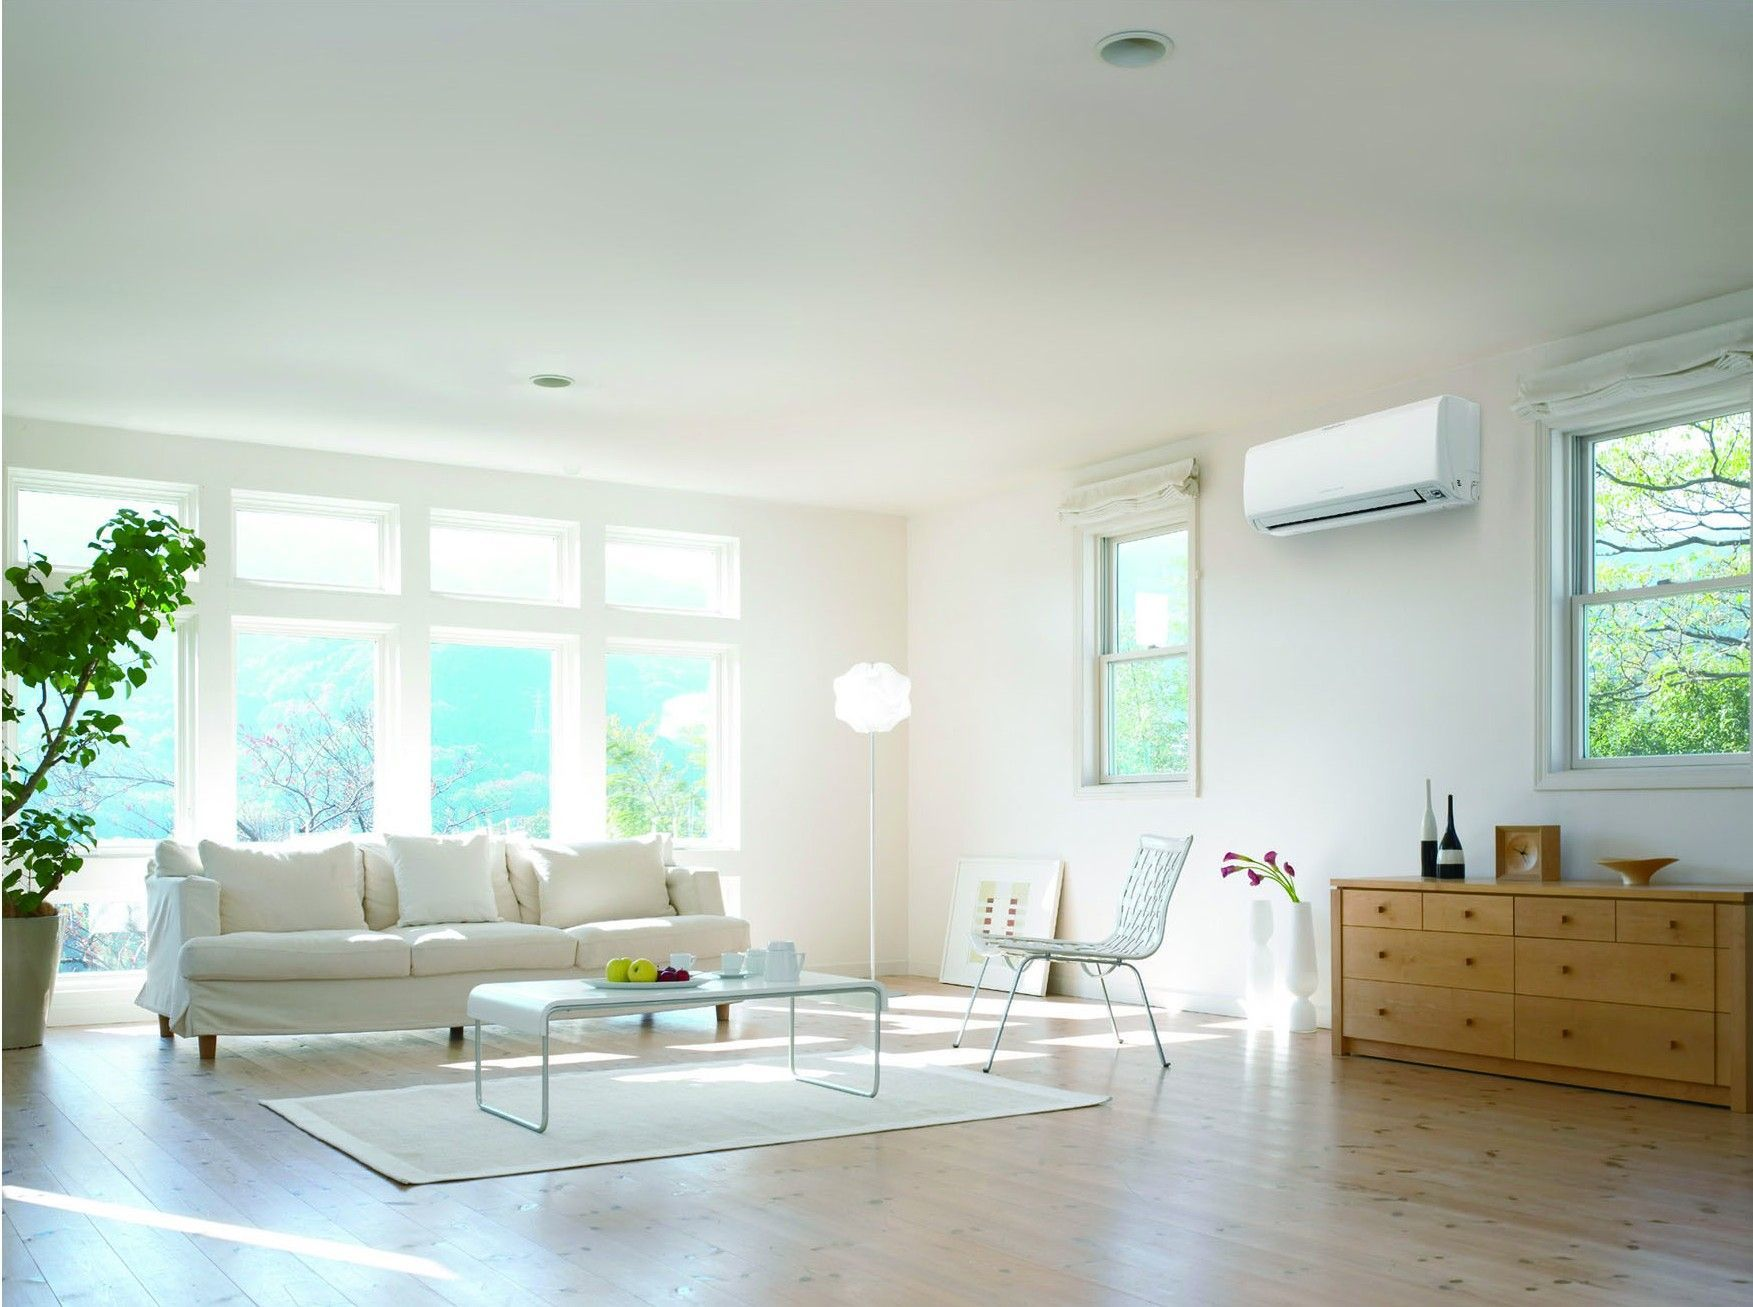 7 ways to increase the lifespan of your aircon | air conditioner